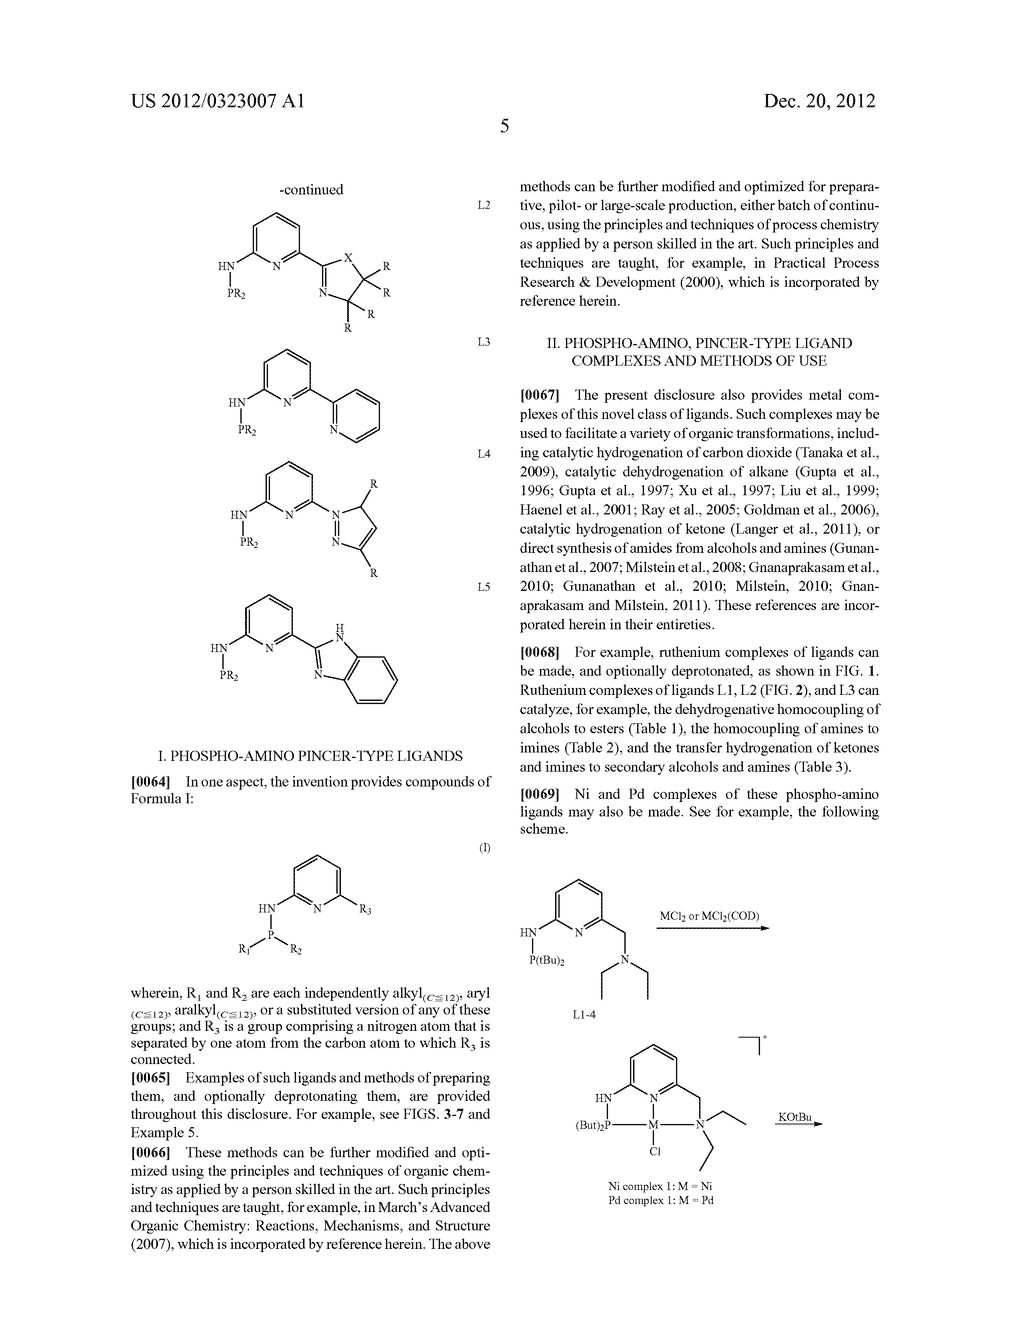 PHOSPHO-AMINO PINCER-TYPE LIGANDS AND CATALYTIC METAL COMPLEXES THEREOF - diagram, schematic, and image 13